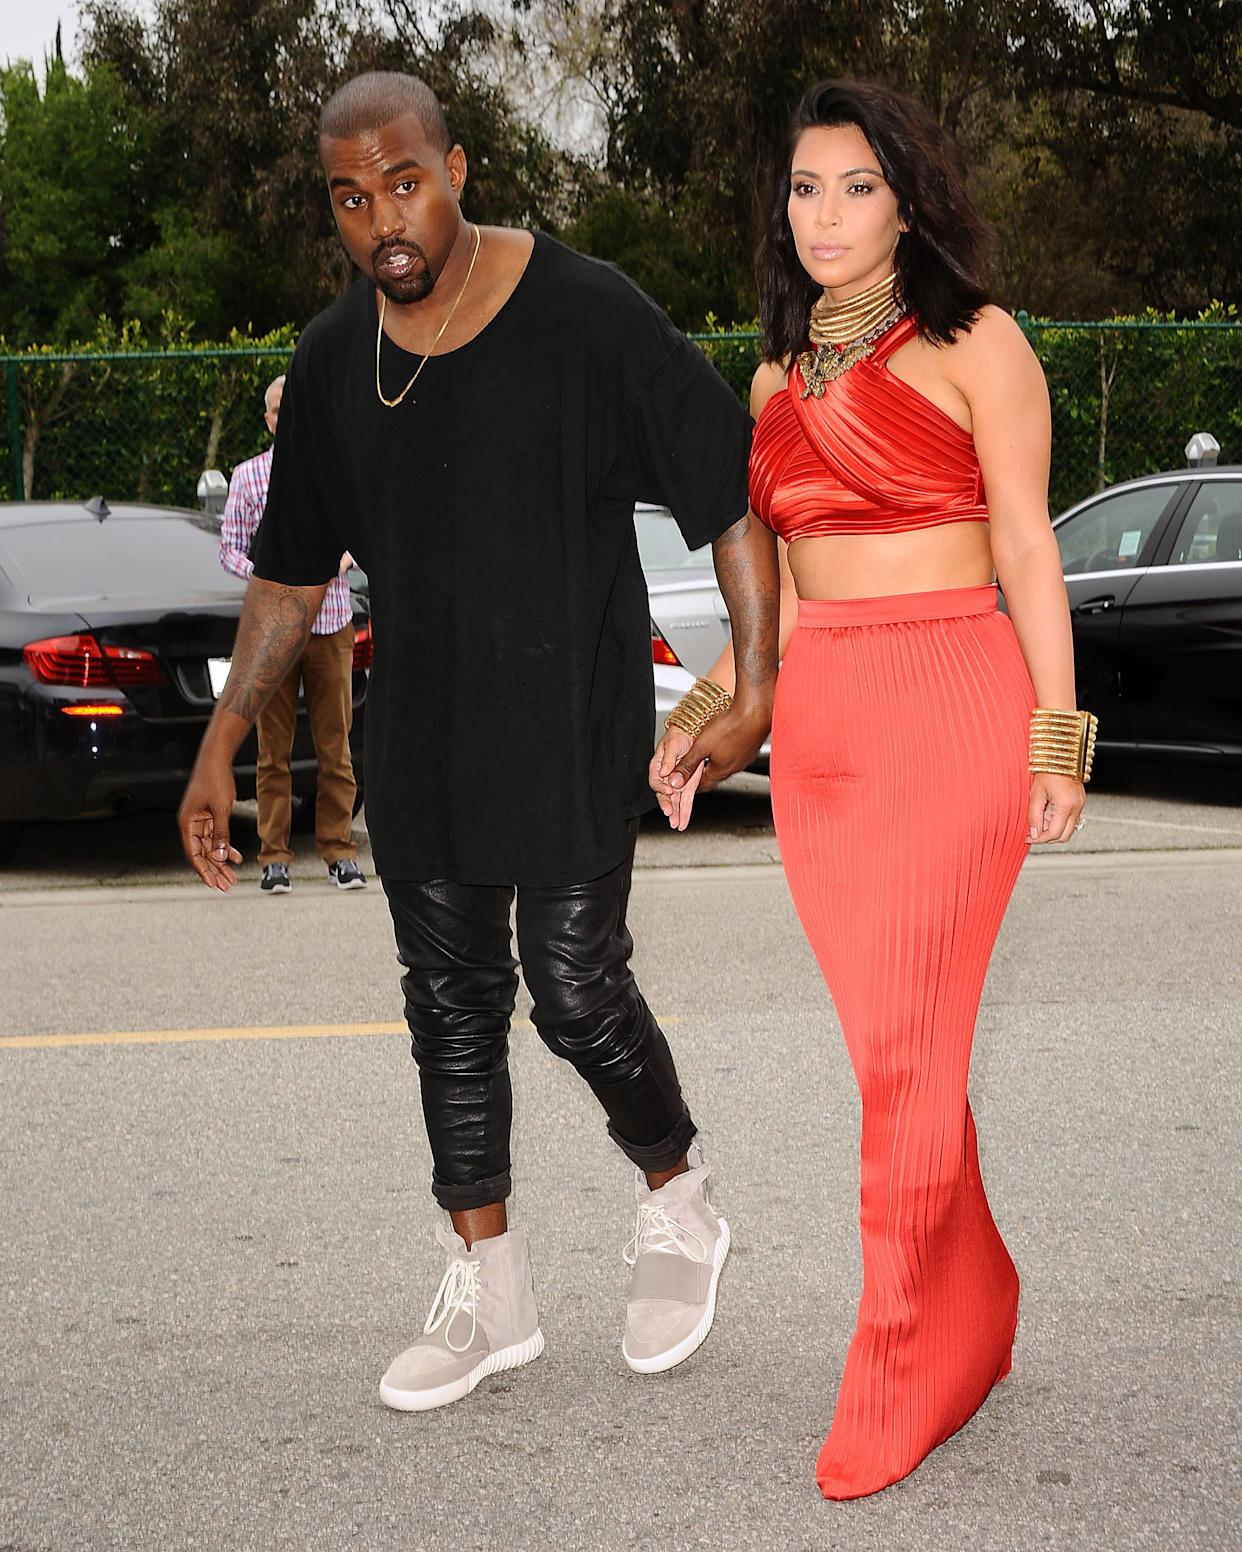 Wearing the Yeezy 3 sneakers 'Yeezy 750 Boost' at the Roc Nation Grammy brunch on February 7 in Beverly Hills.